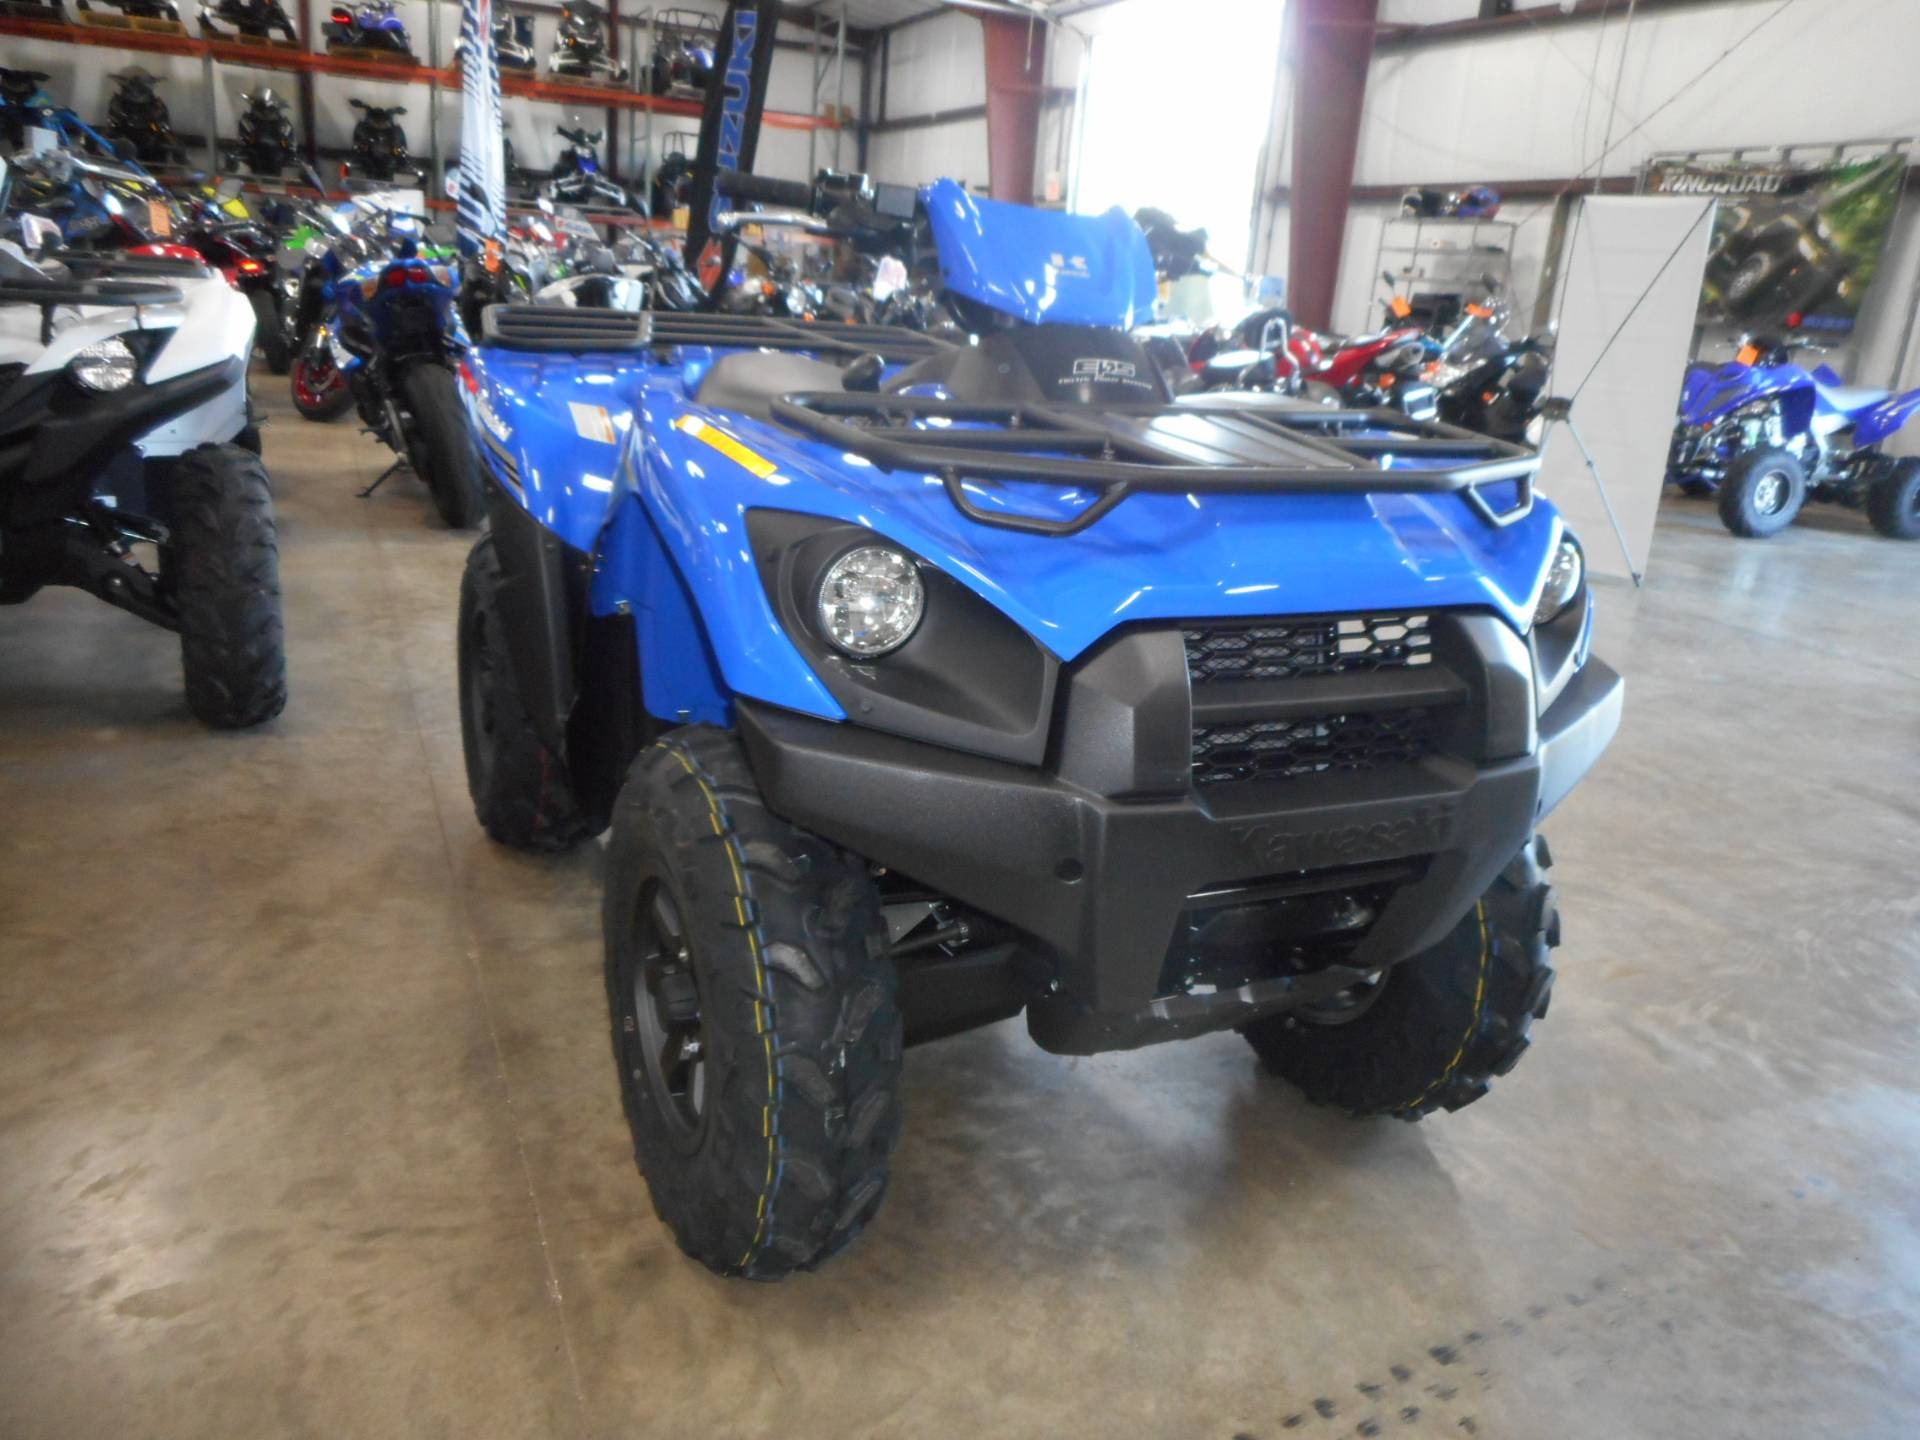 2020 Kawasaki Brute Force 750 4x4i EPS in Belvidere, Illinois - Photo 11